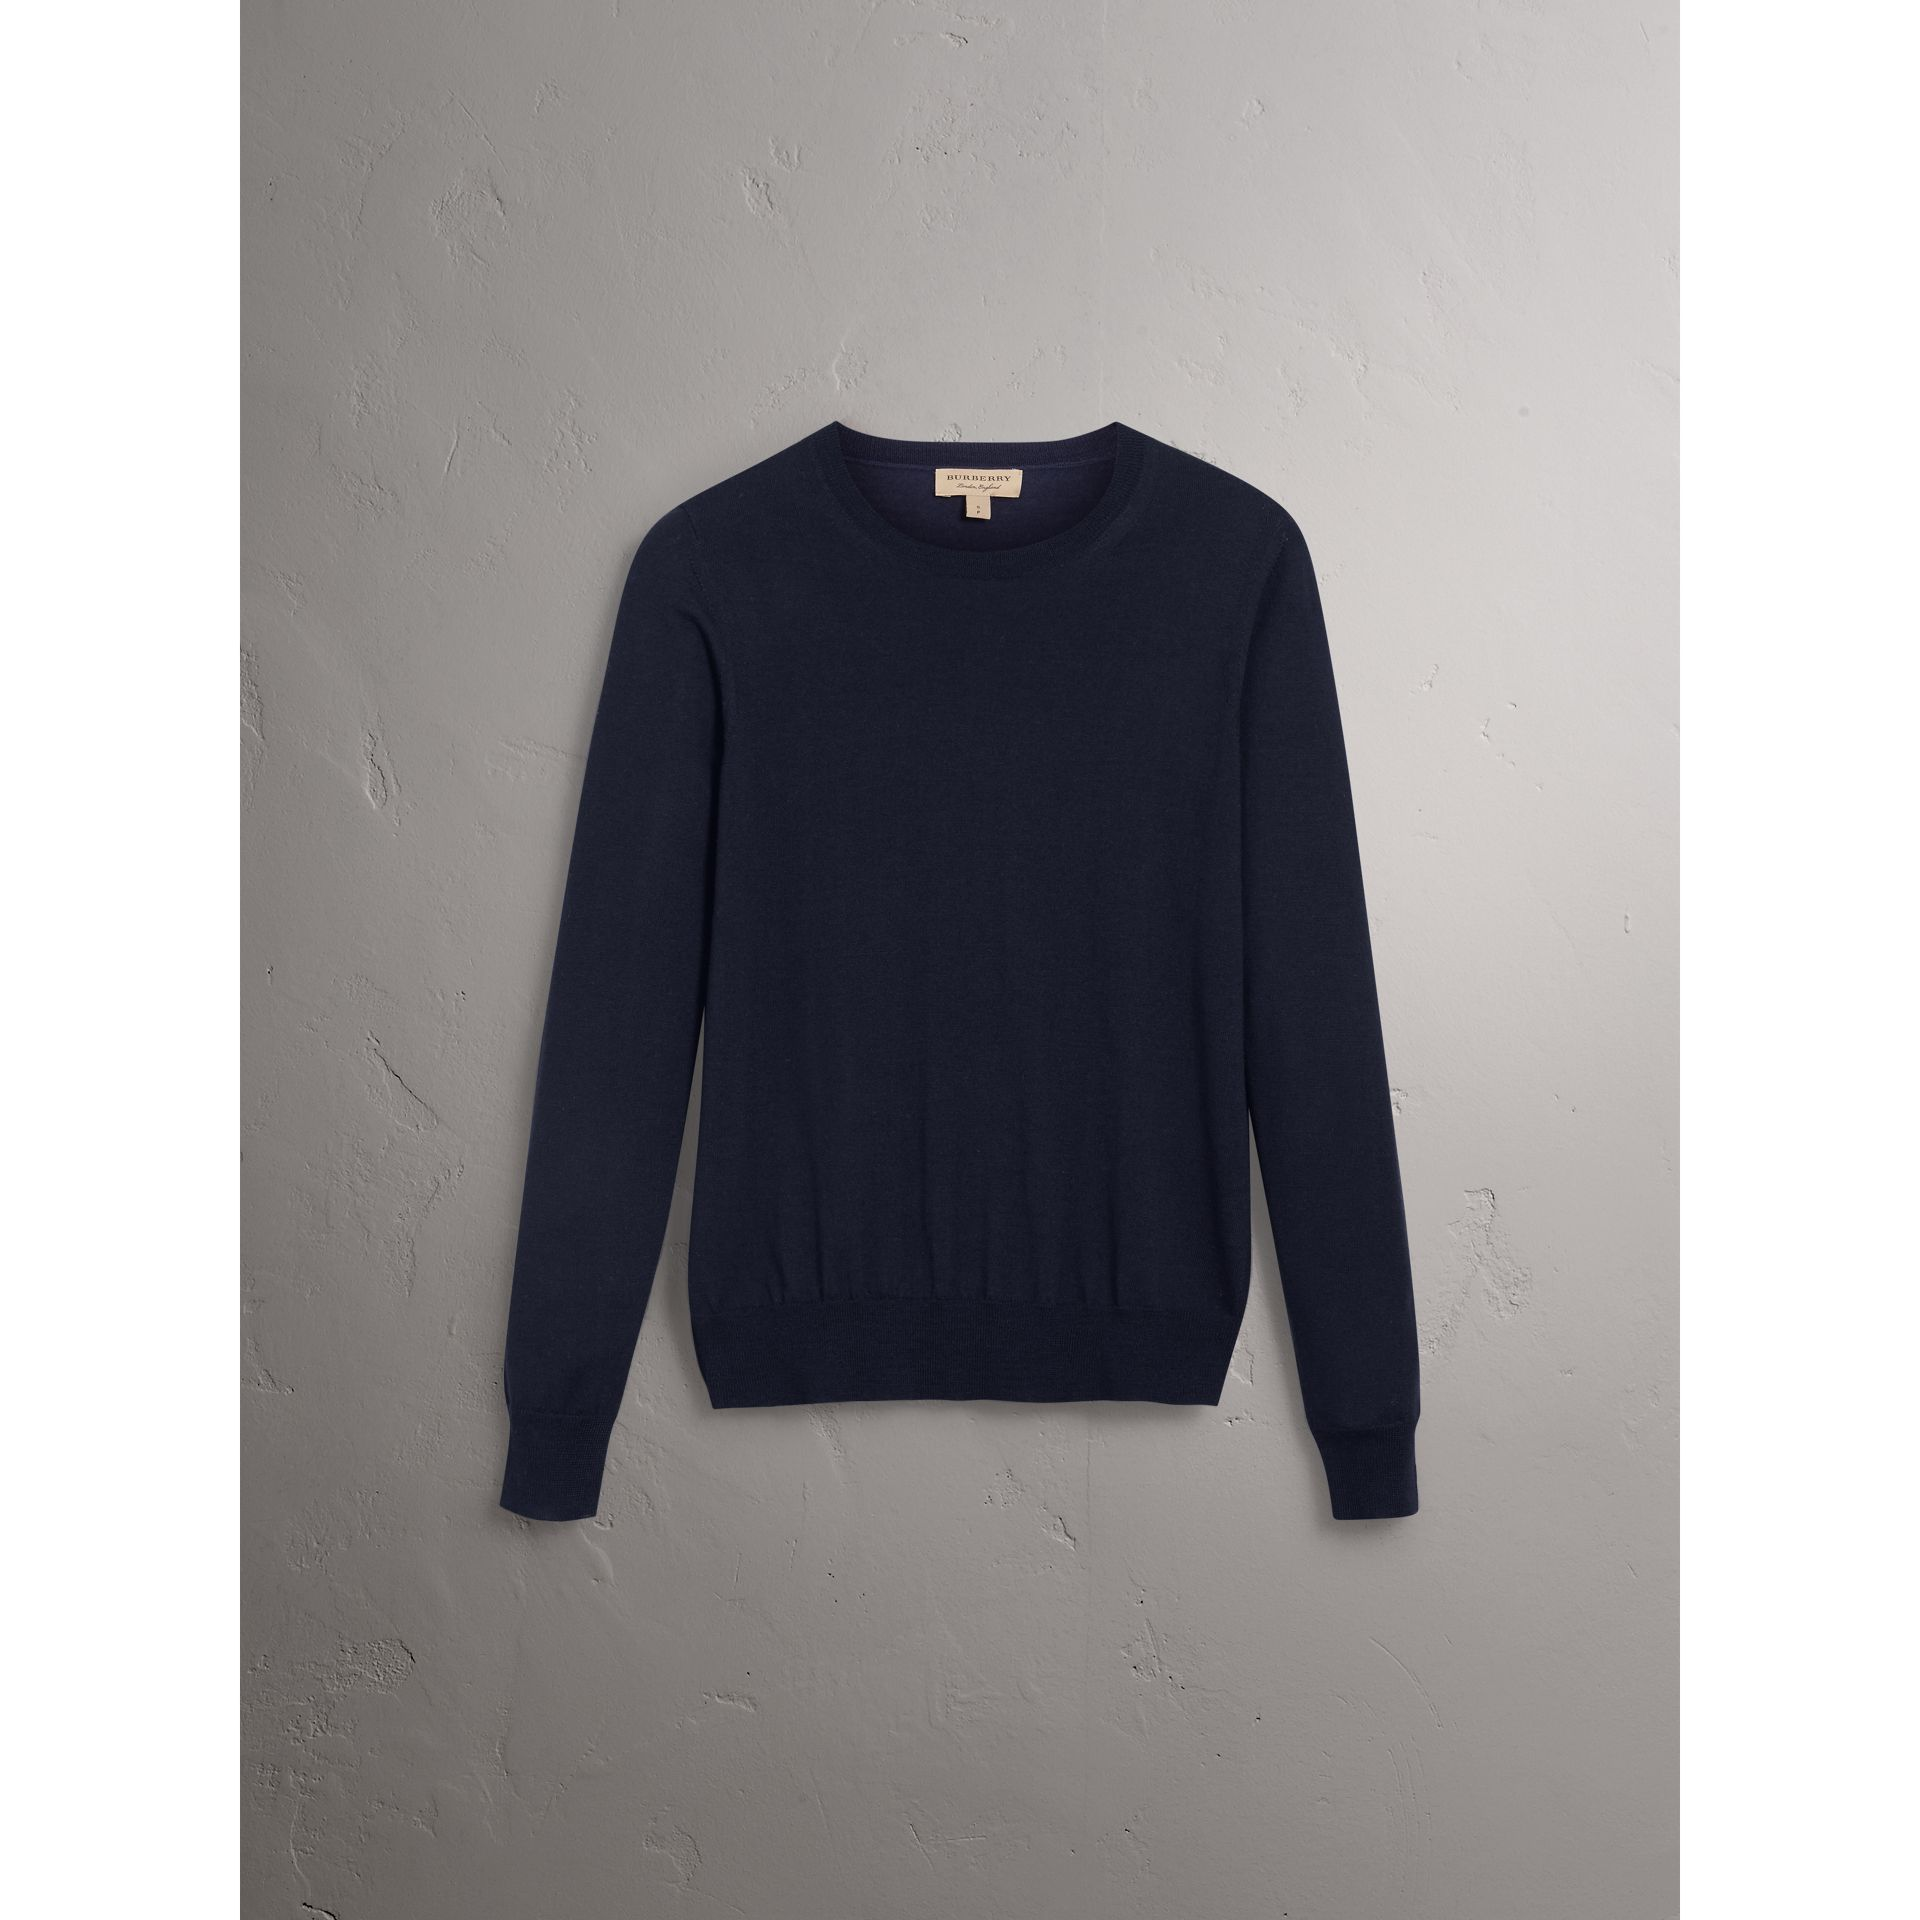 Check Detail Merino Wool Sweater in Navy - Women | Burberry Australia - gallery image 3